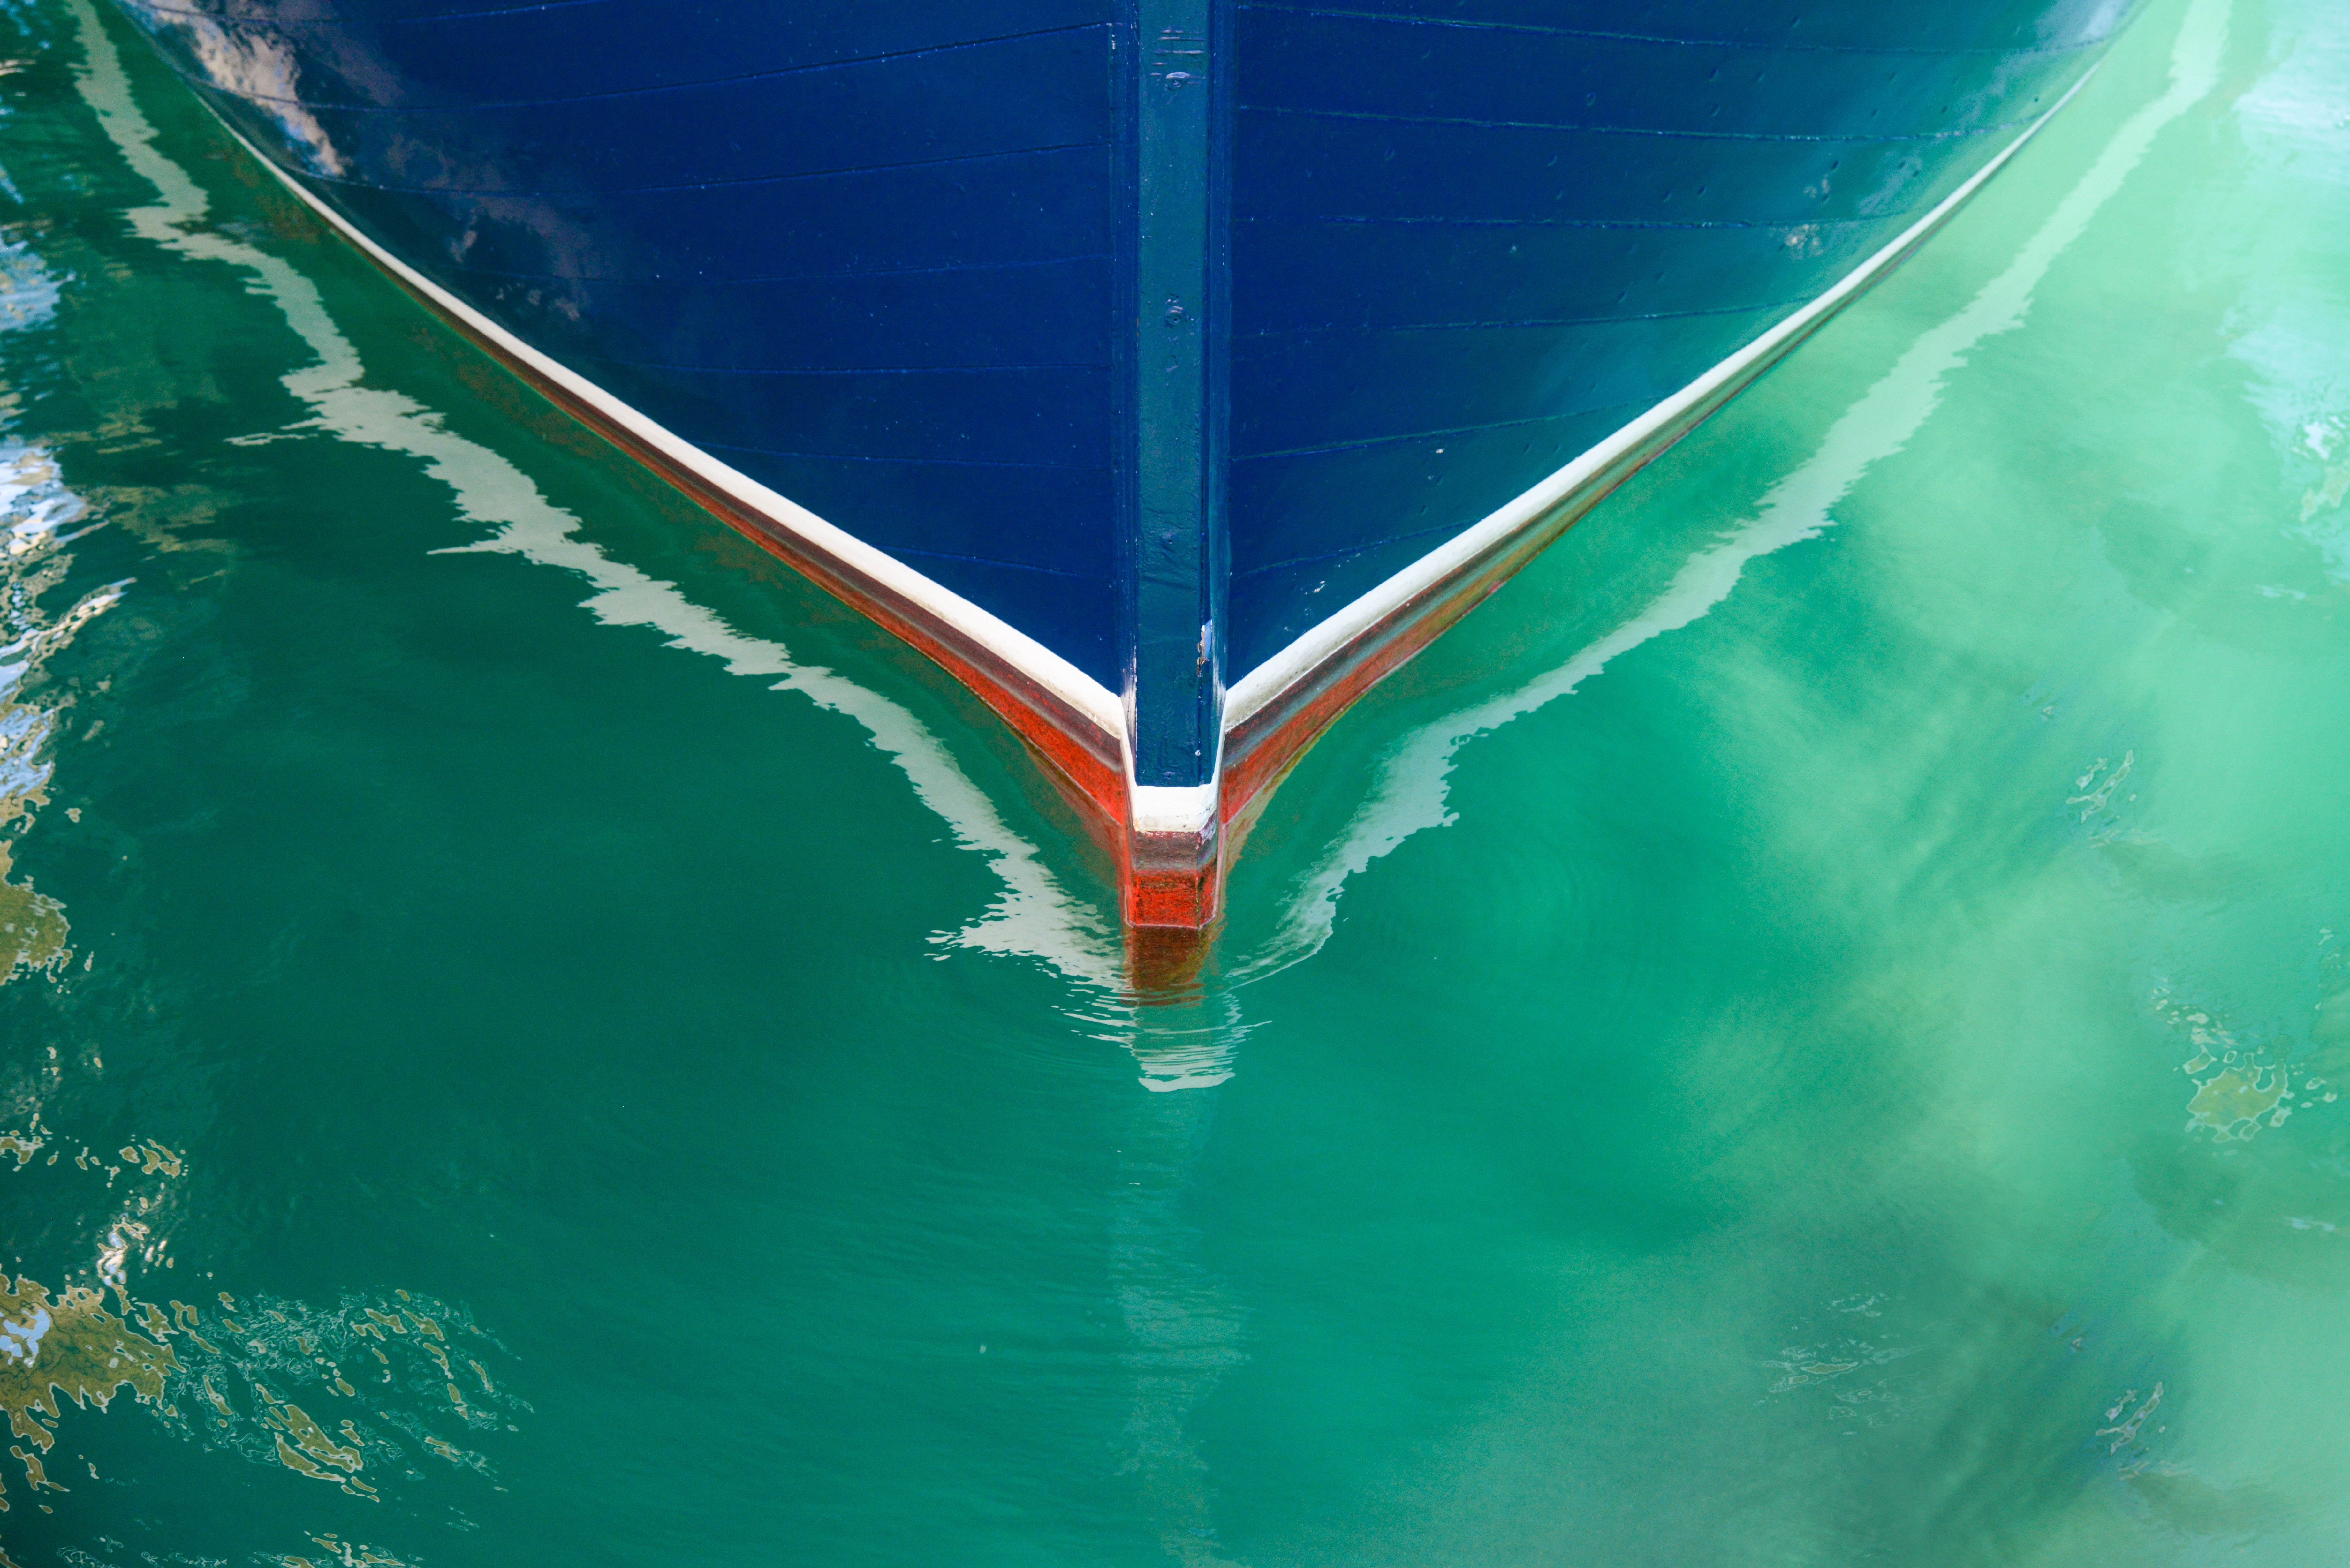 Stern of a blue boat rides through clear waters